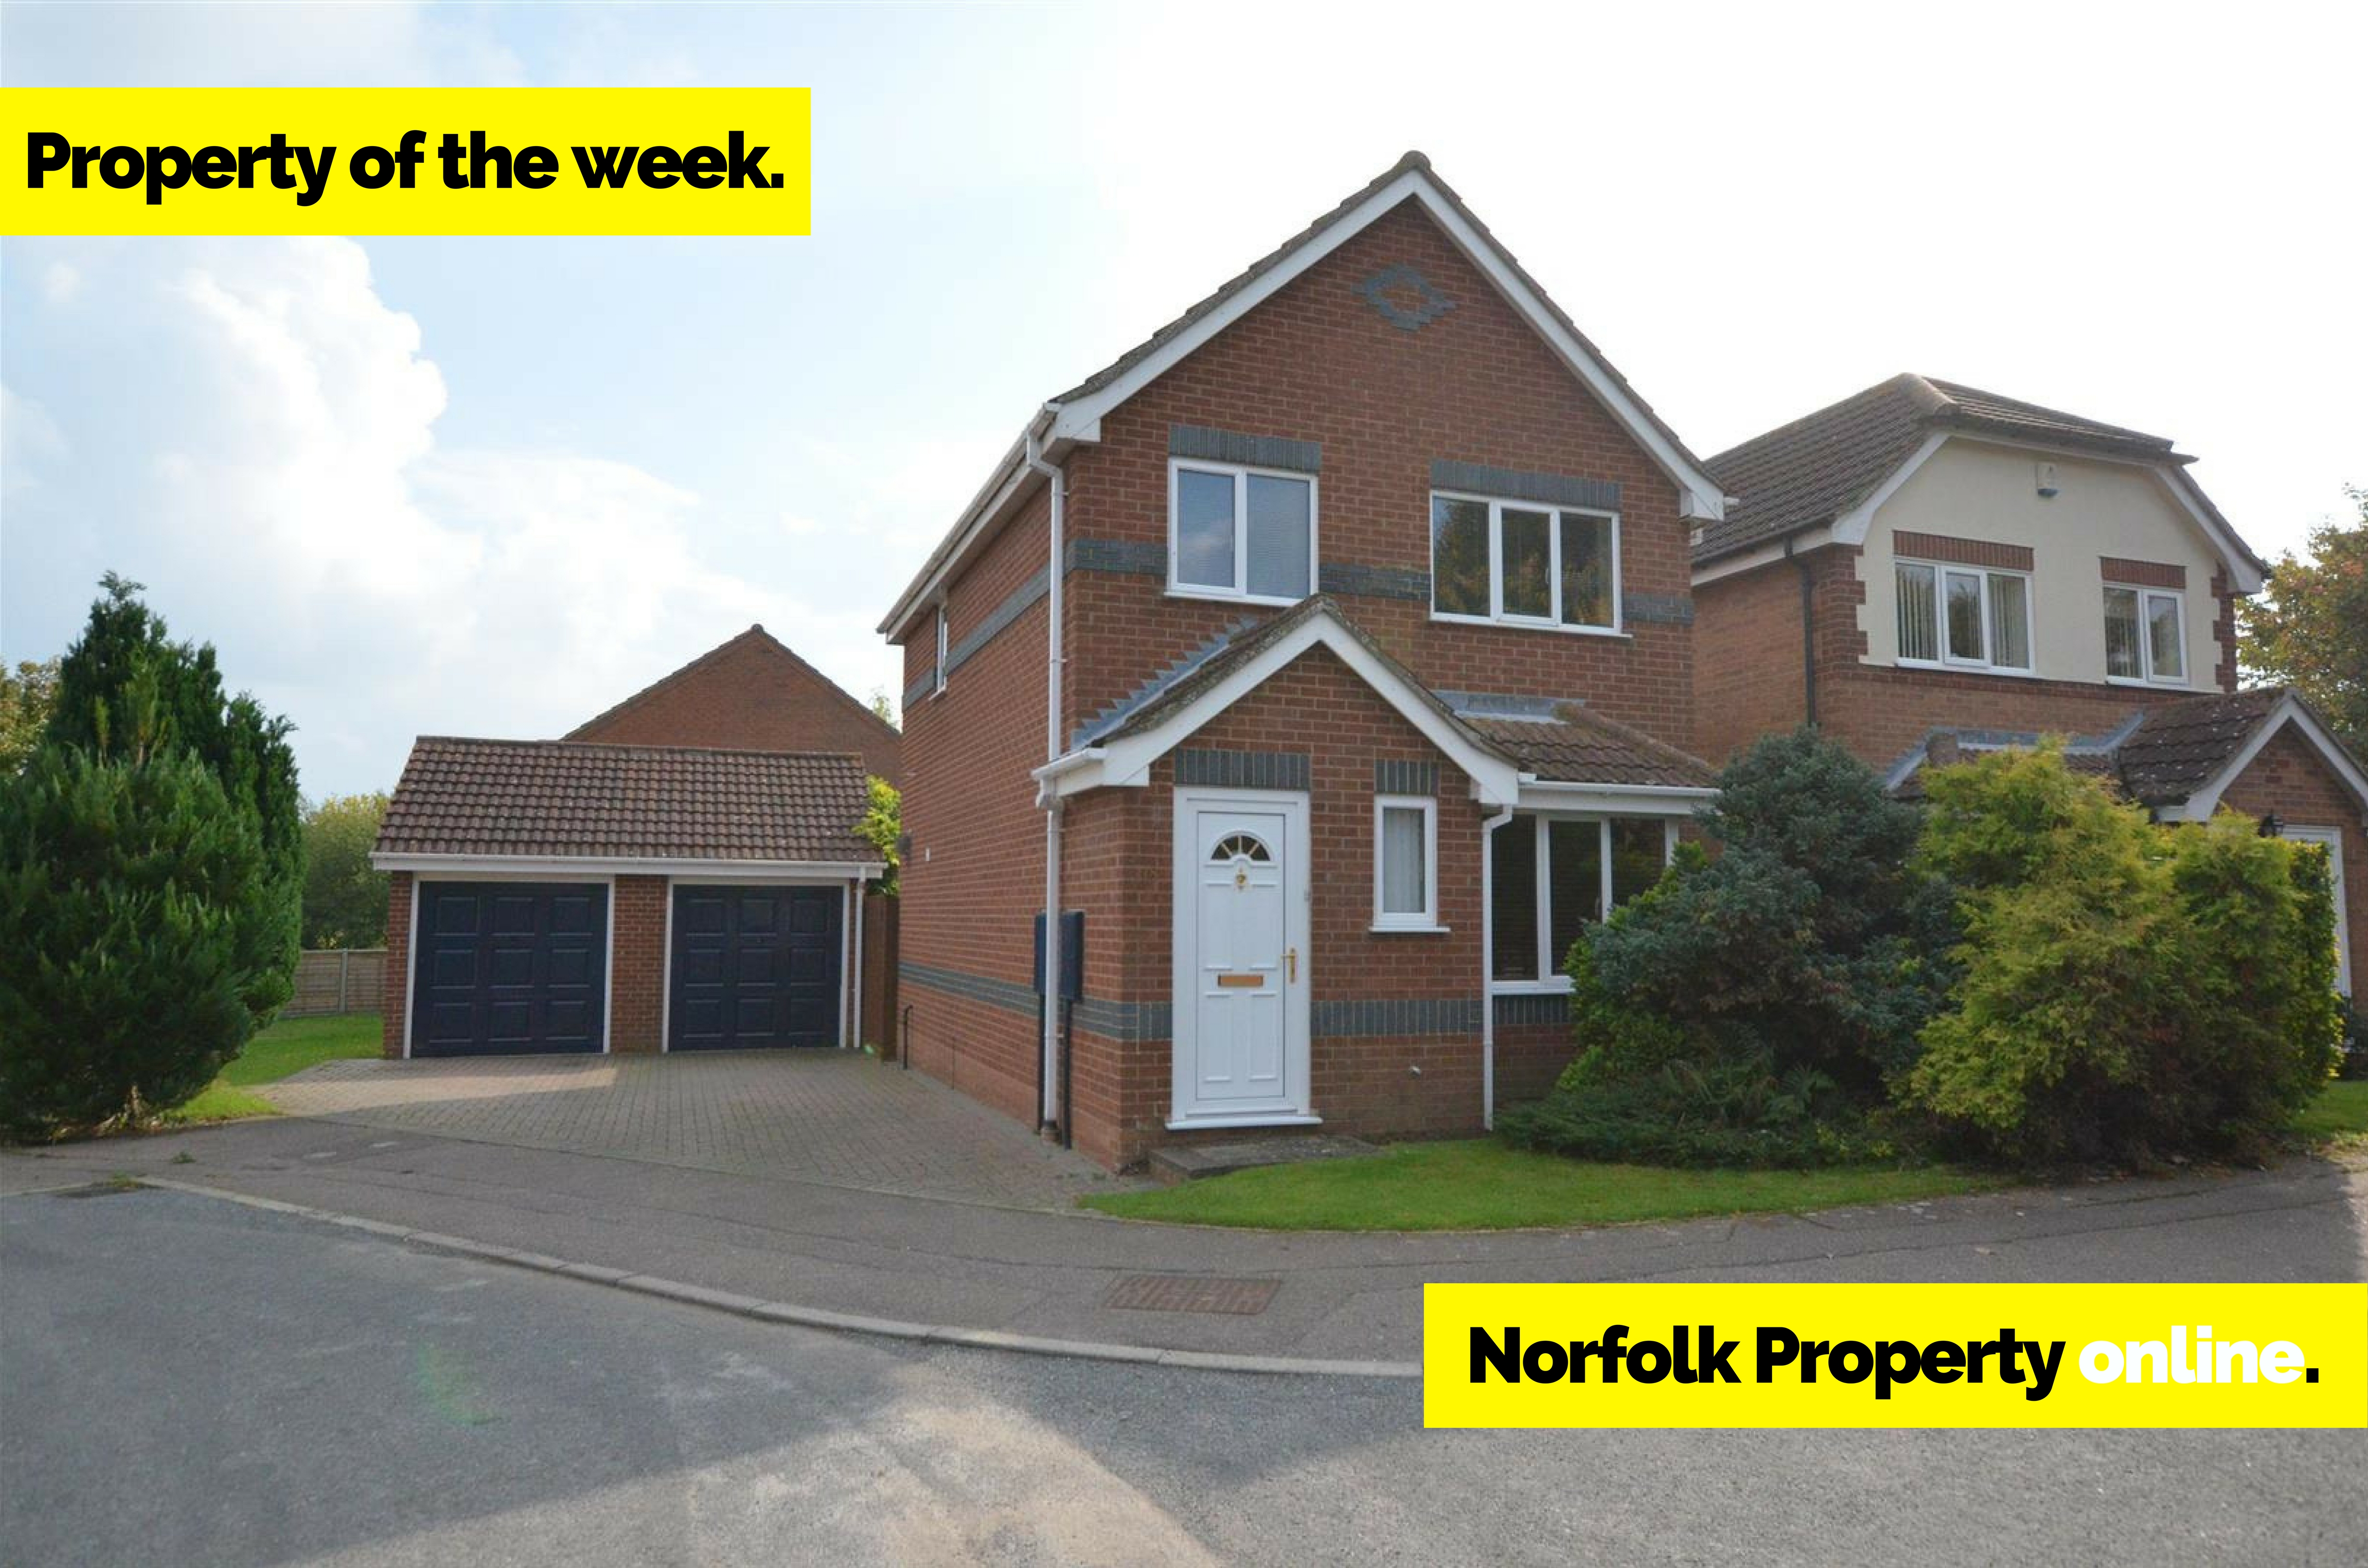 Property for sale on Laud Close in Thorpe St Andrew